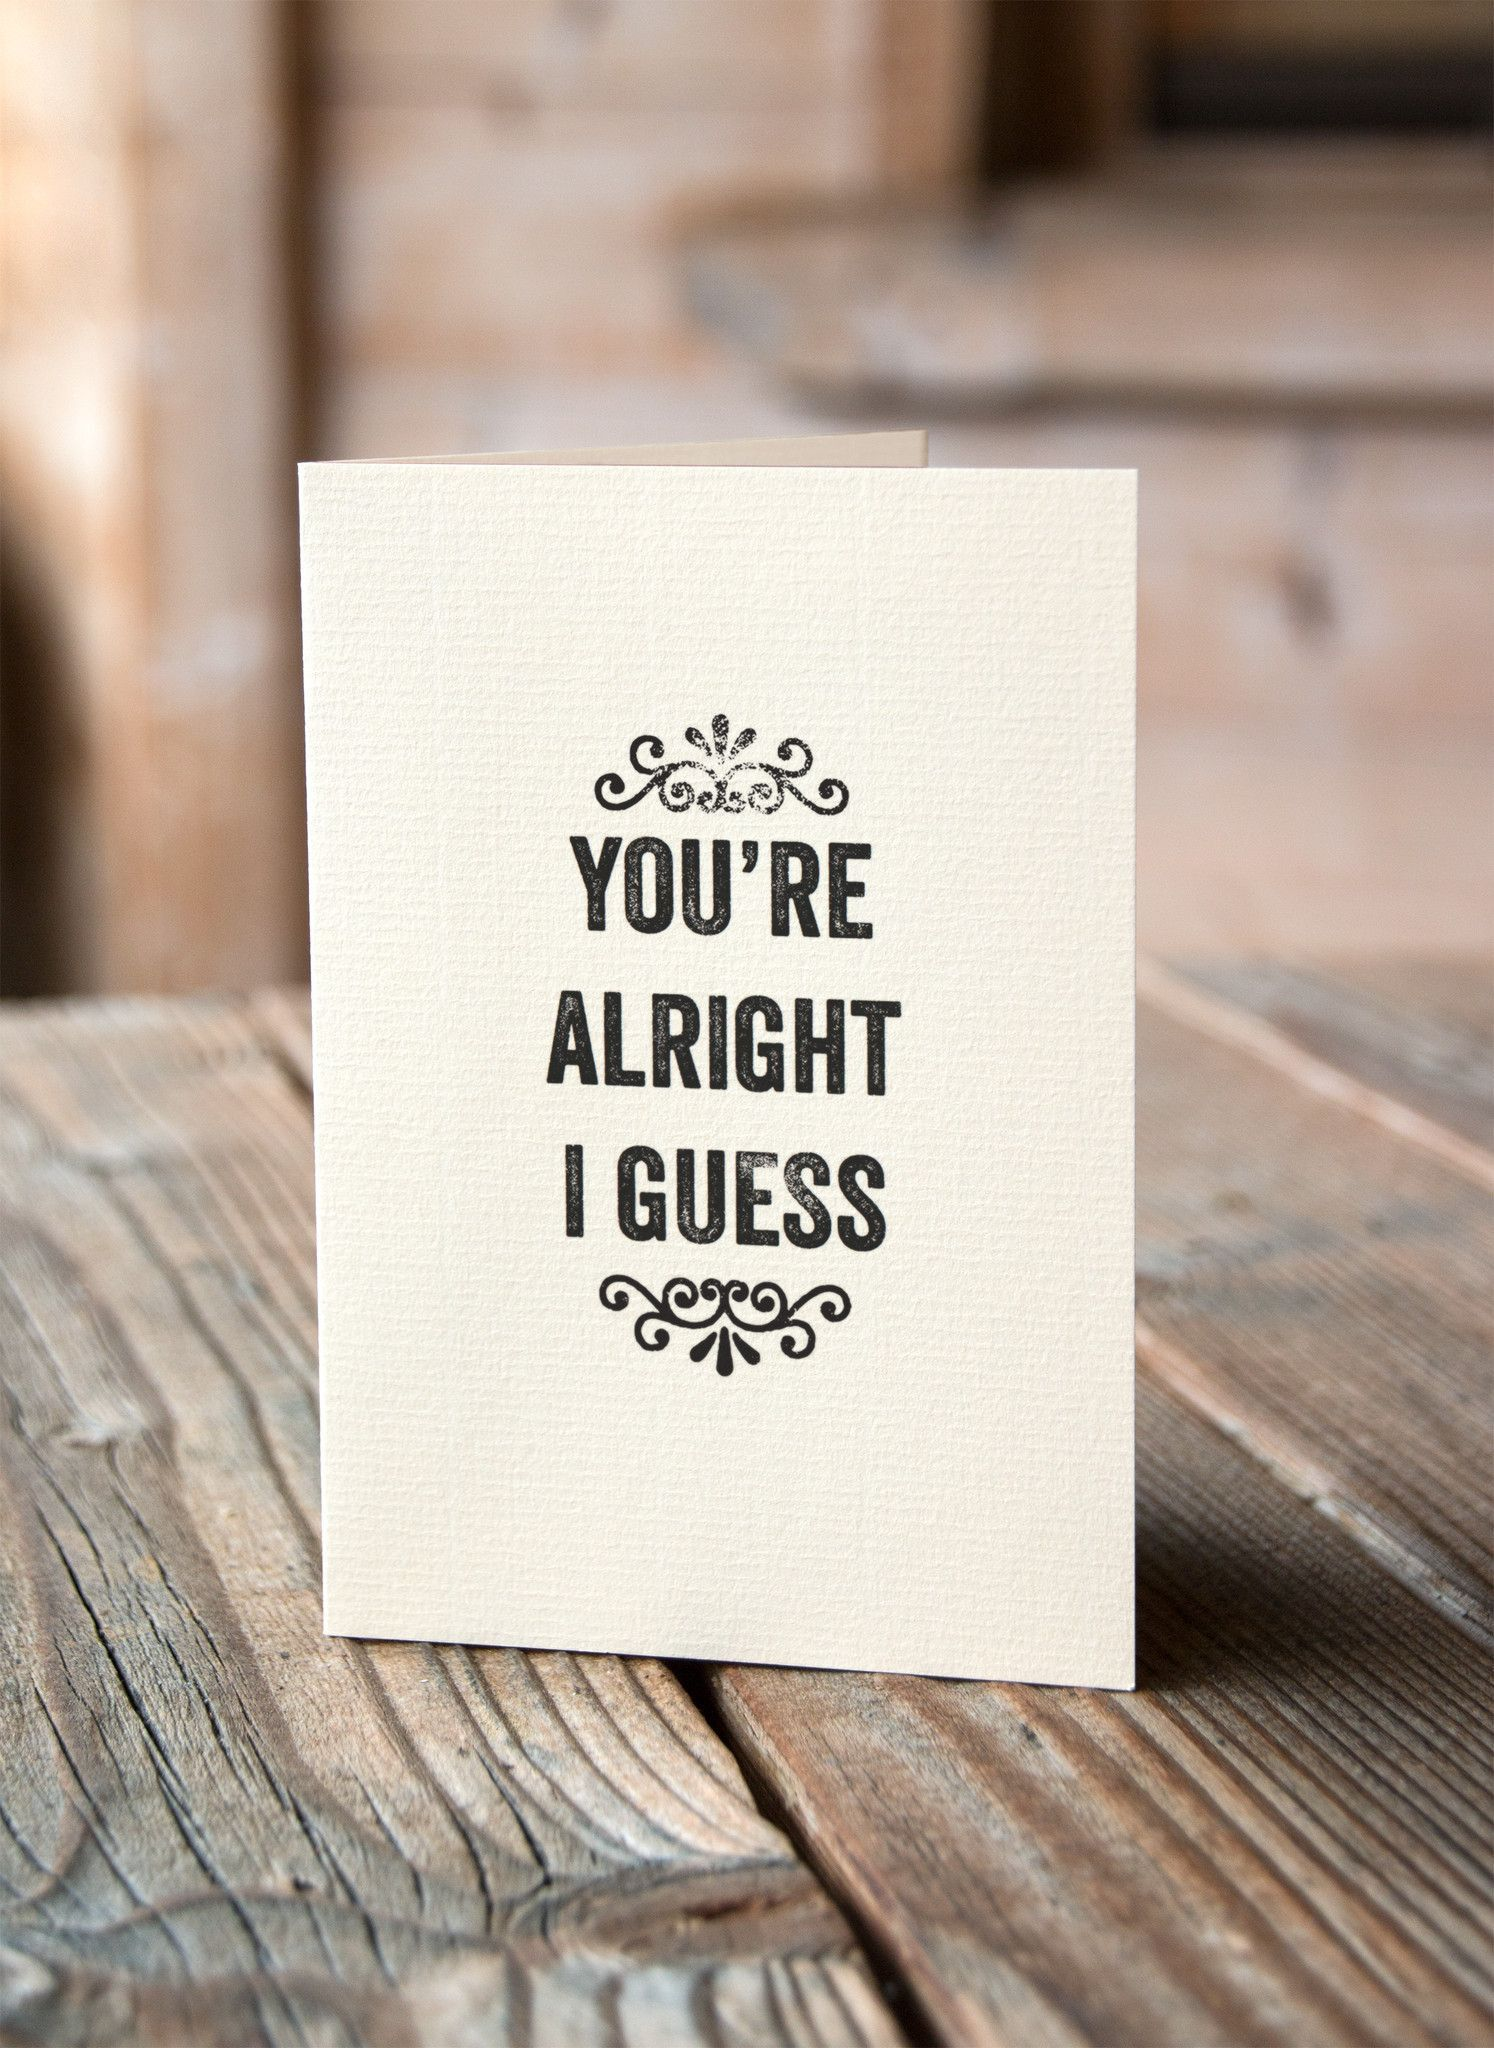 Youre Alright I Guess Snarky Relationship Greeting Card Products